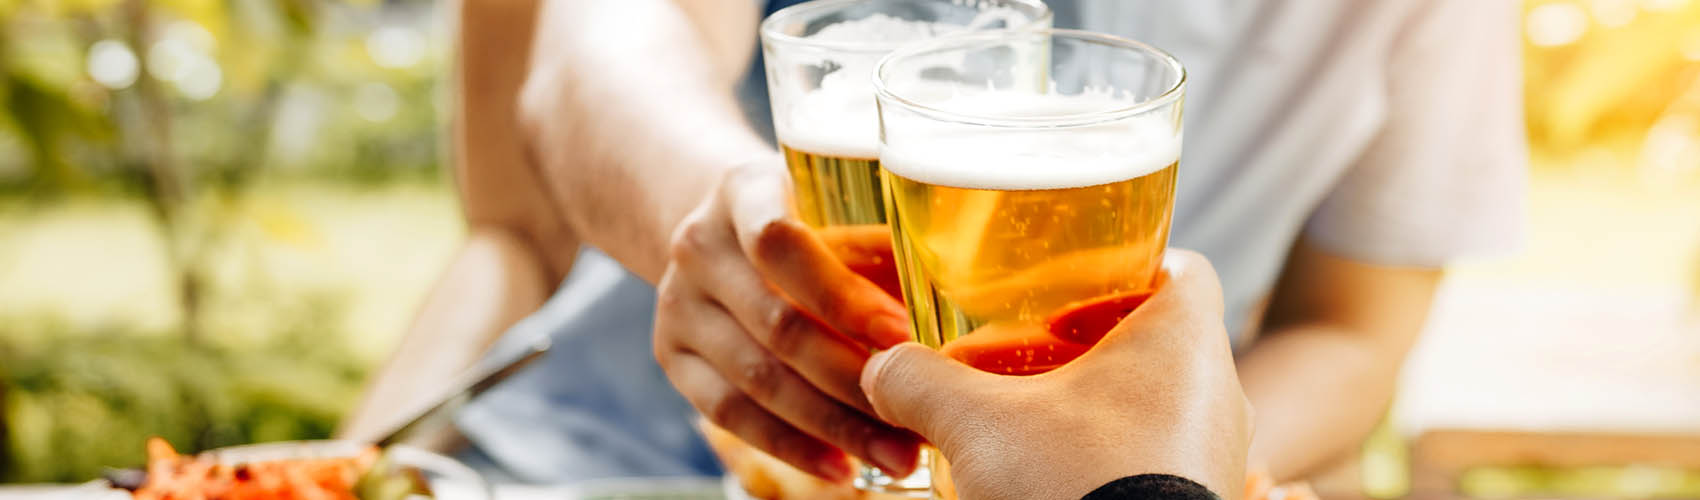 Why Do Insurers Care About How Much I Drink?